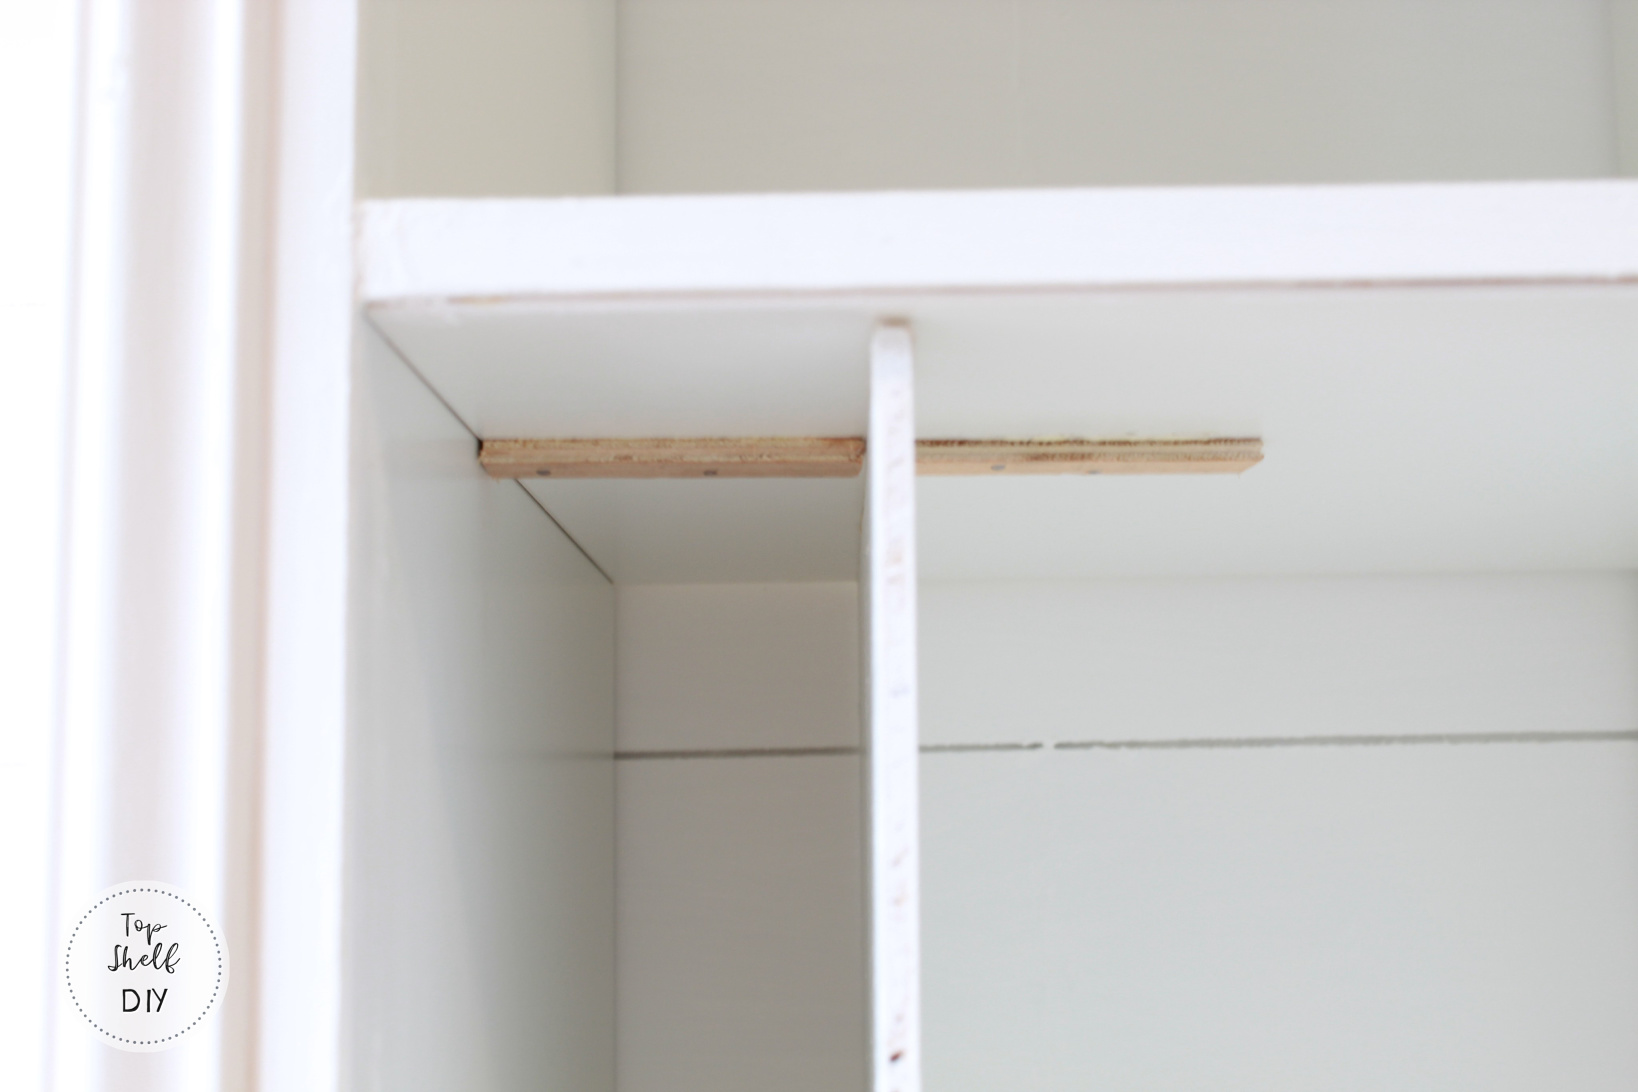 Use this hack to add organization and style to your Ikea kallax shelving unit!